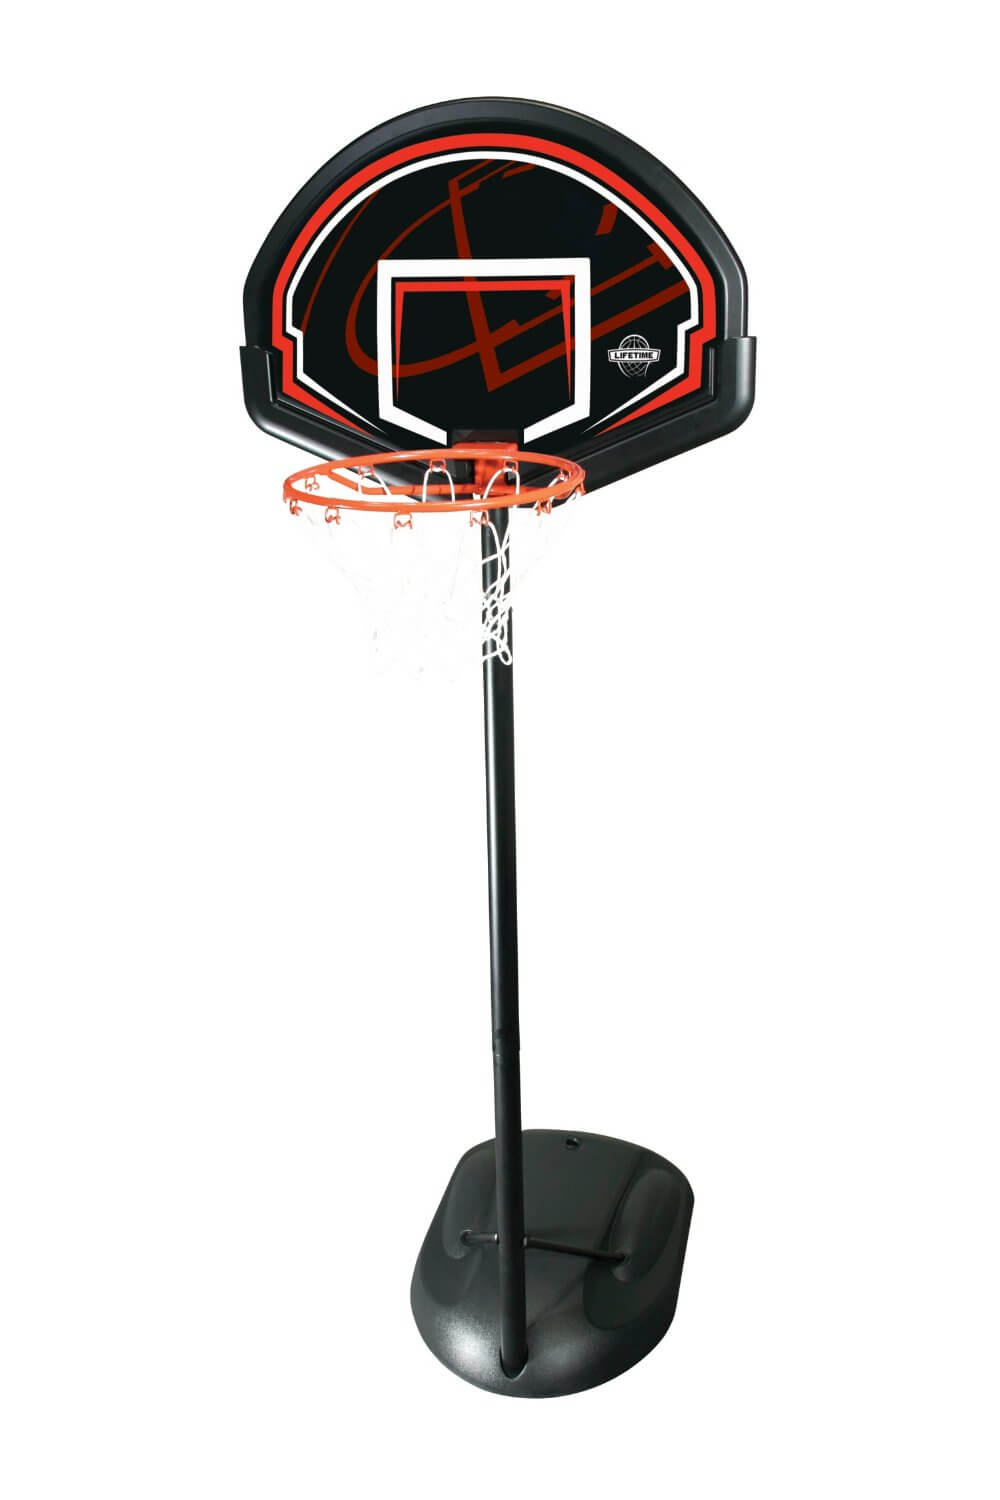 Citaten Hoop Hoopz : Basketball hoops for kids bestoutdoorbasketball